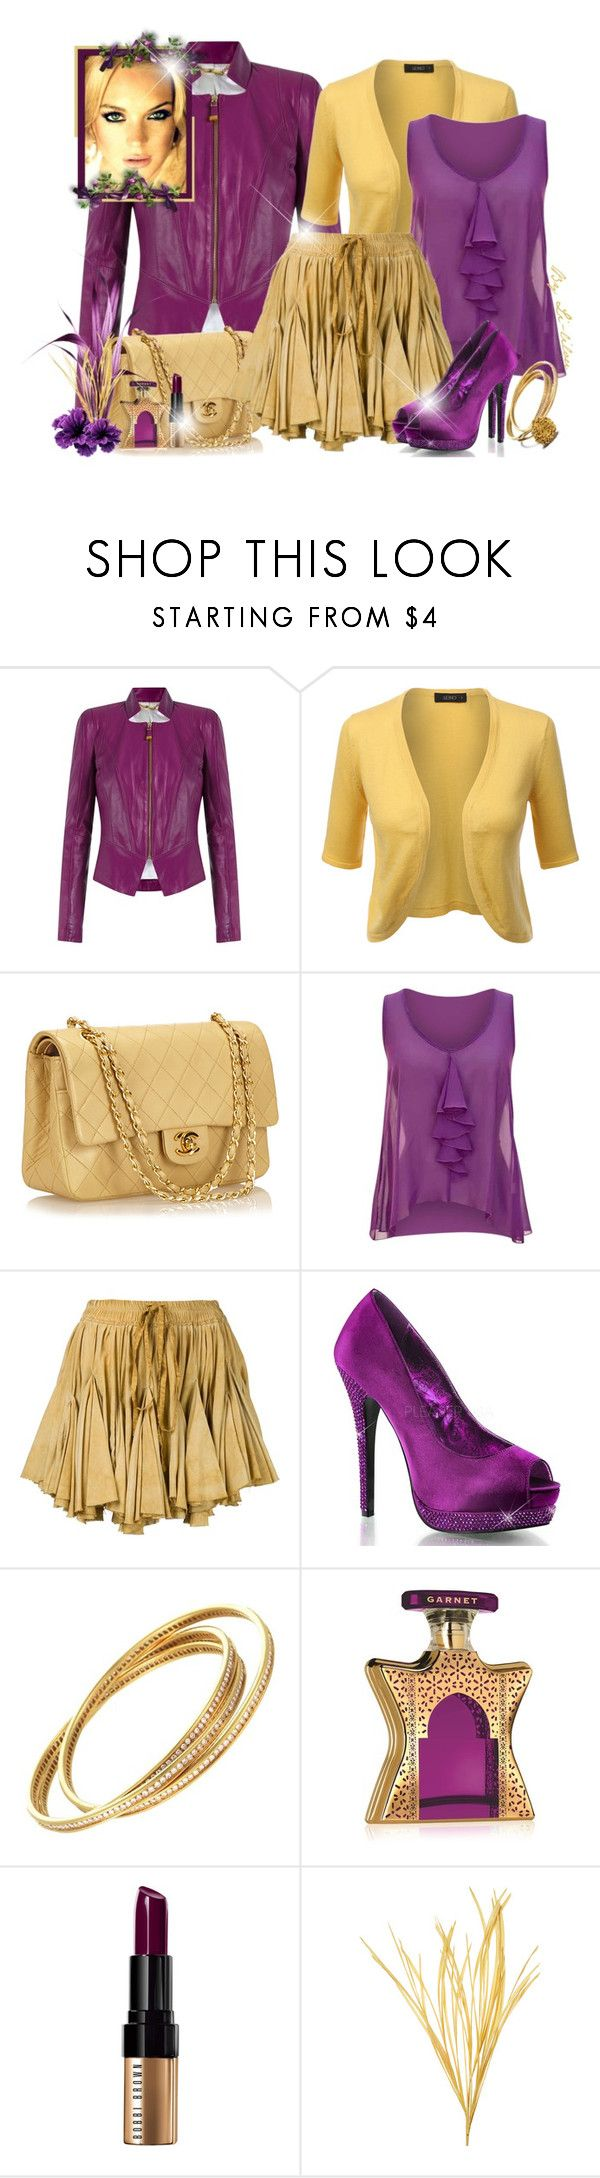 """""""💛Charmed 💜"""" by li-lilou ❤ liked on Polyvore featuring Tufi Duek, LE3NO, Chanel, jon & anna, Vivienne Westwood Gold Label, Cartier, Bond No. 9 and Bobbi Brown Cosmetics"""